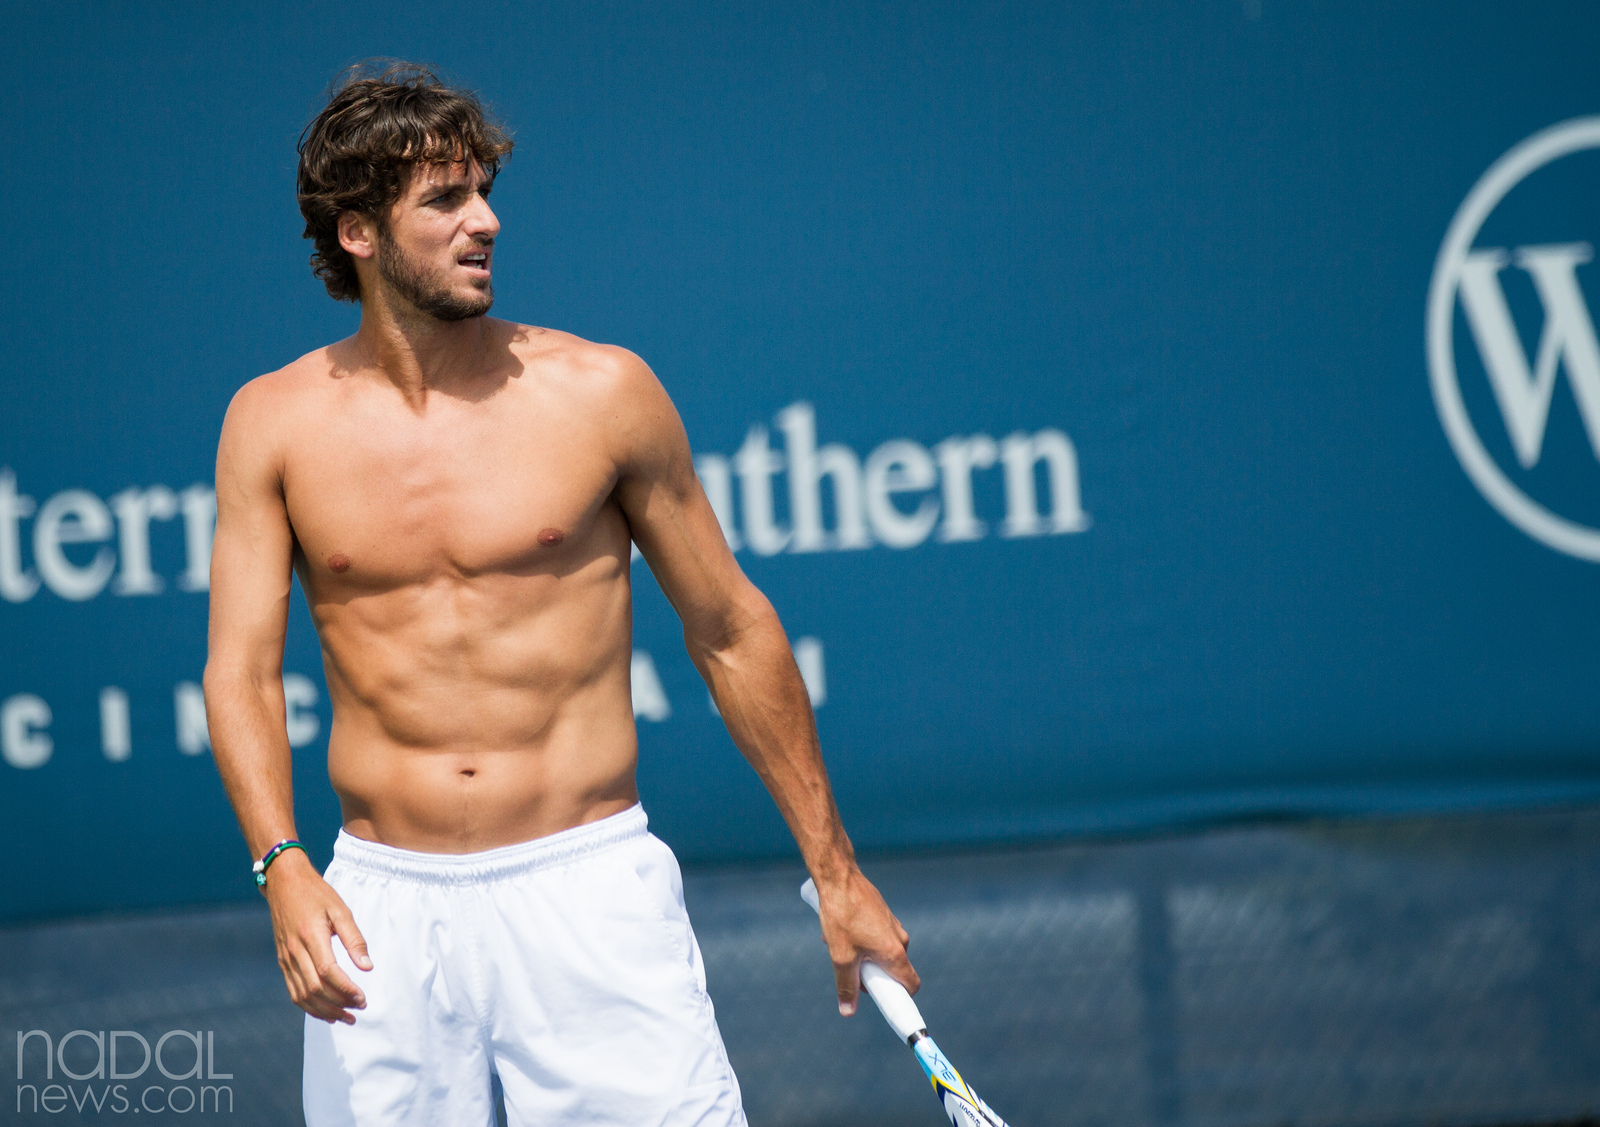 tennis, Feliciano Lopez, shirtless, sexy